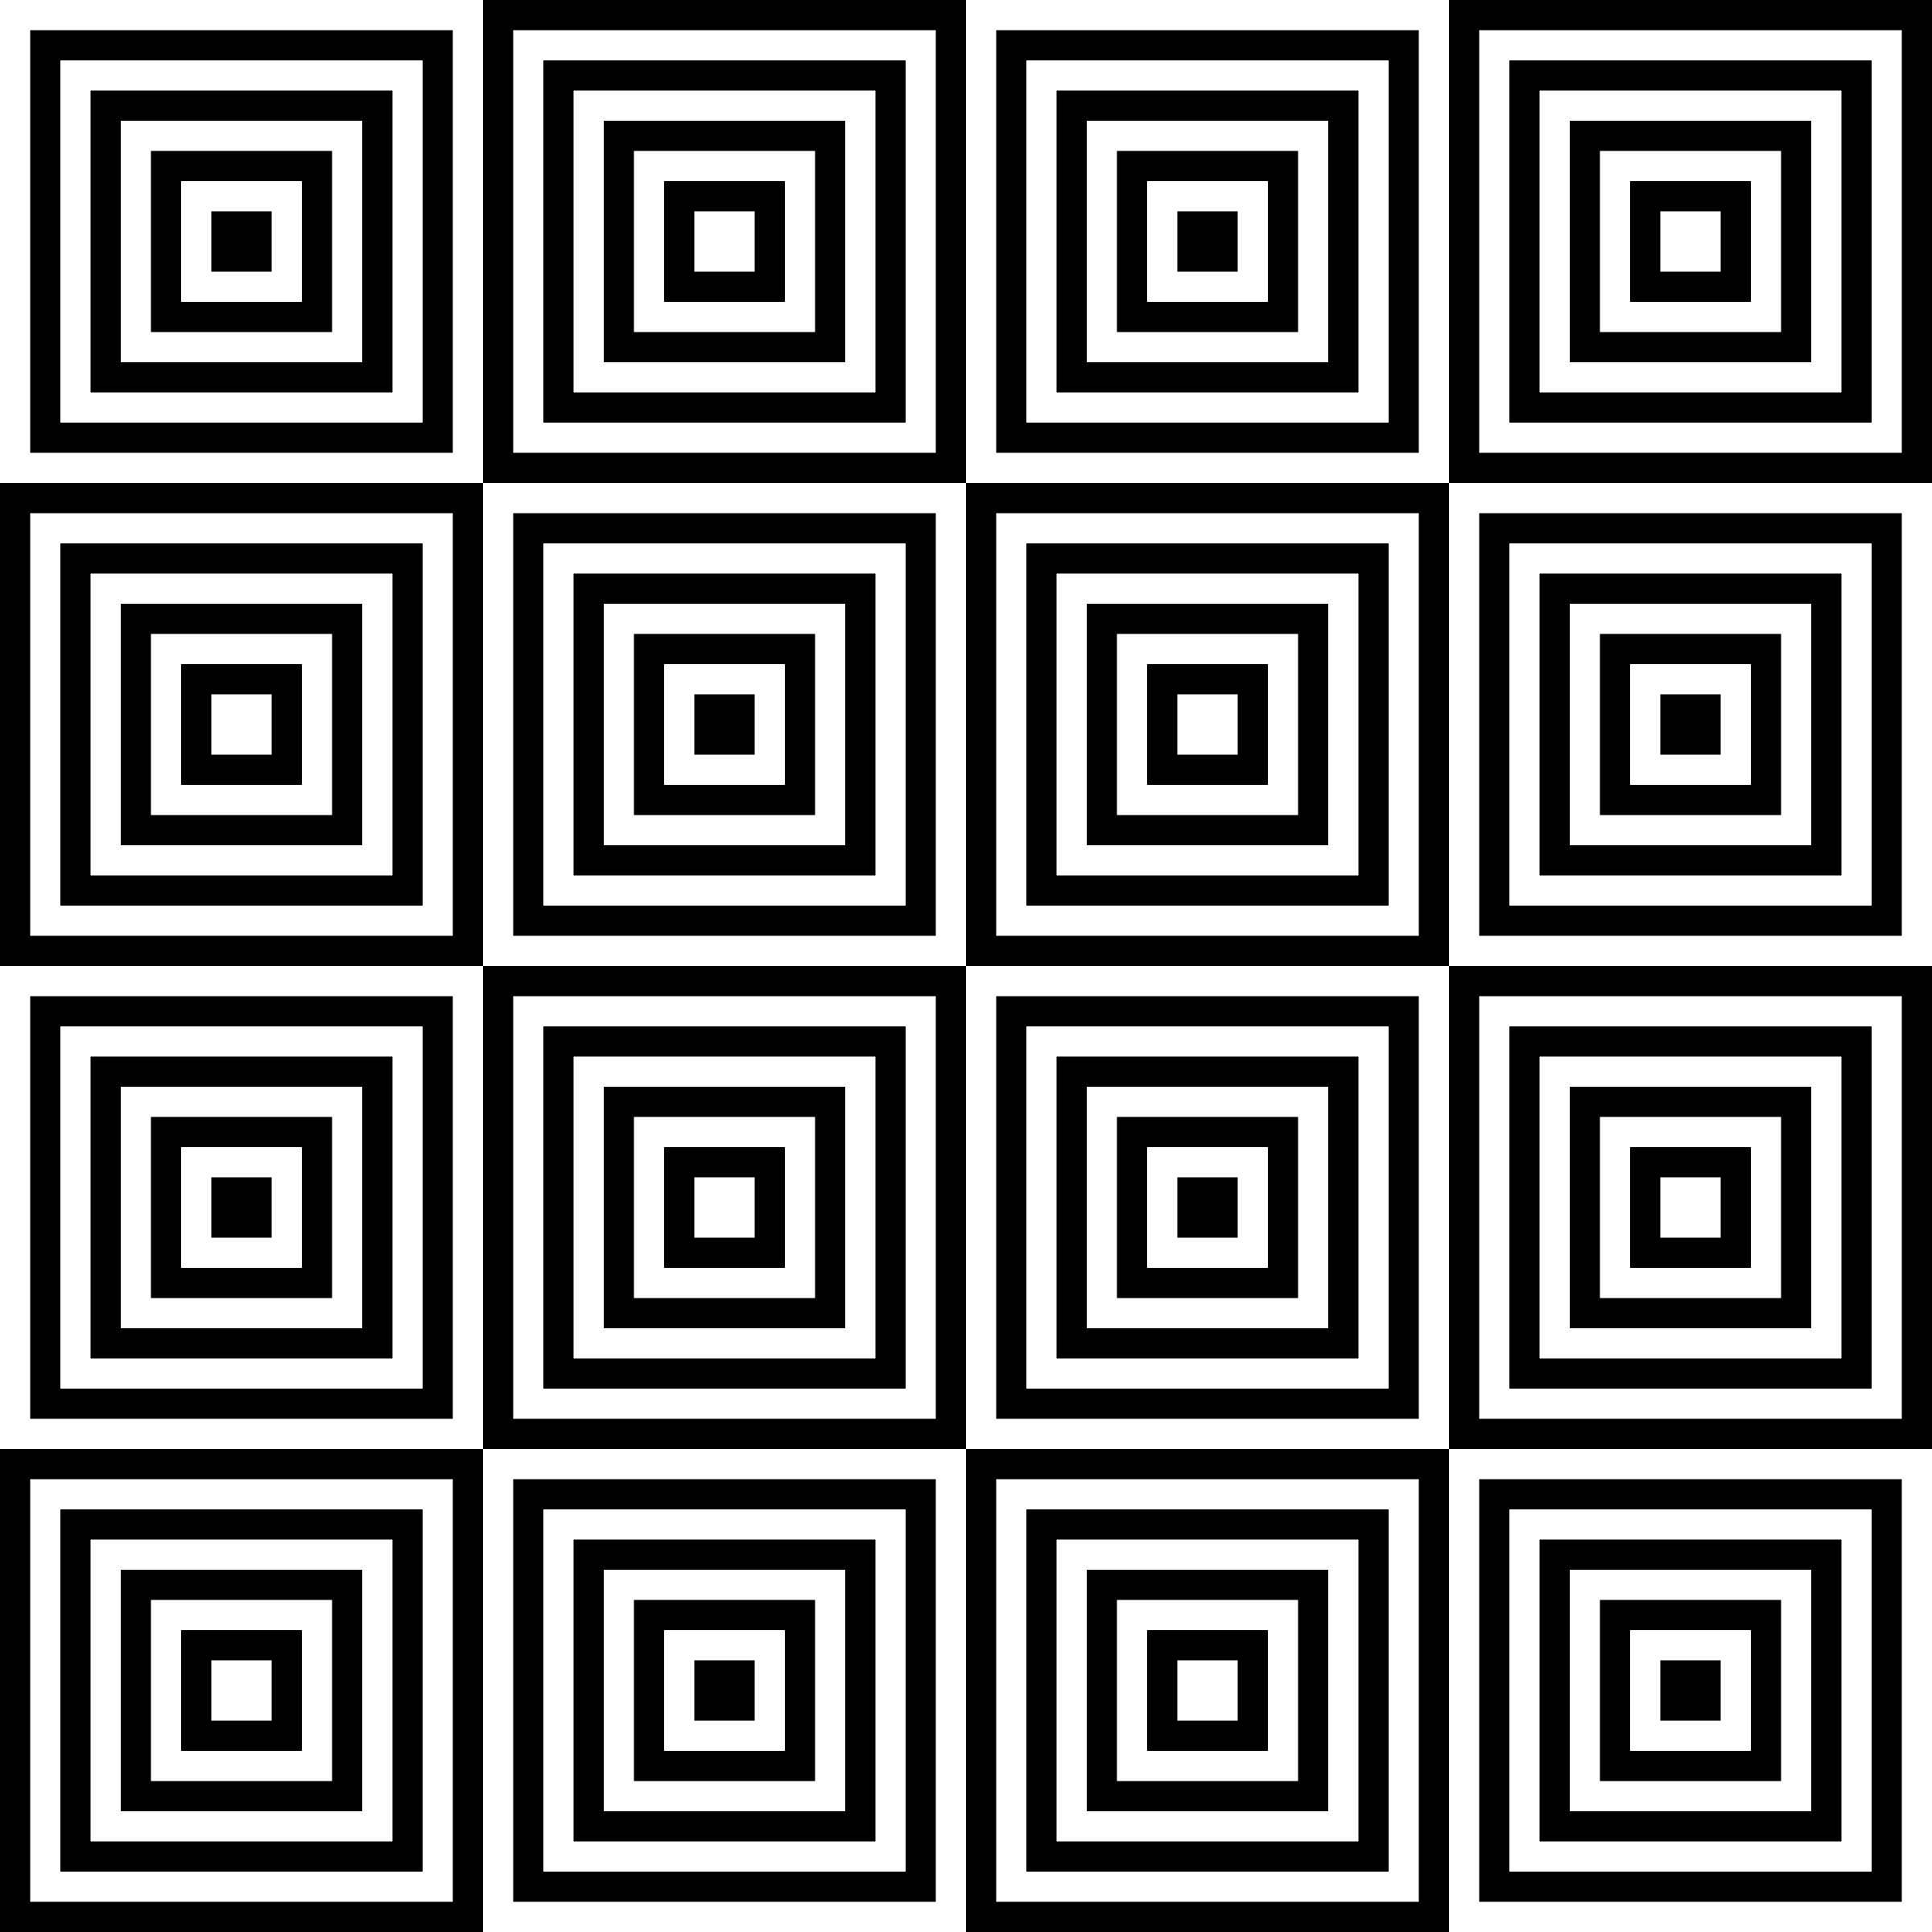 square-target-chessboard by 10binary